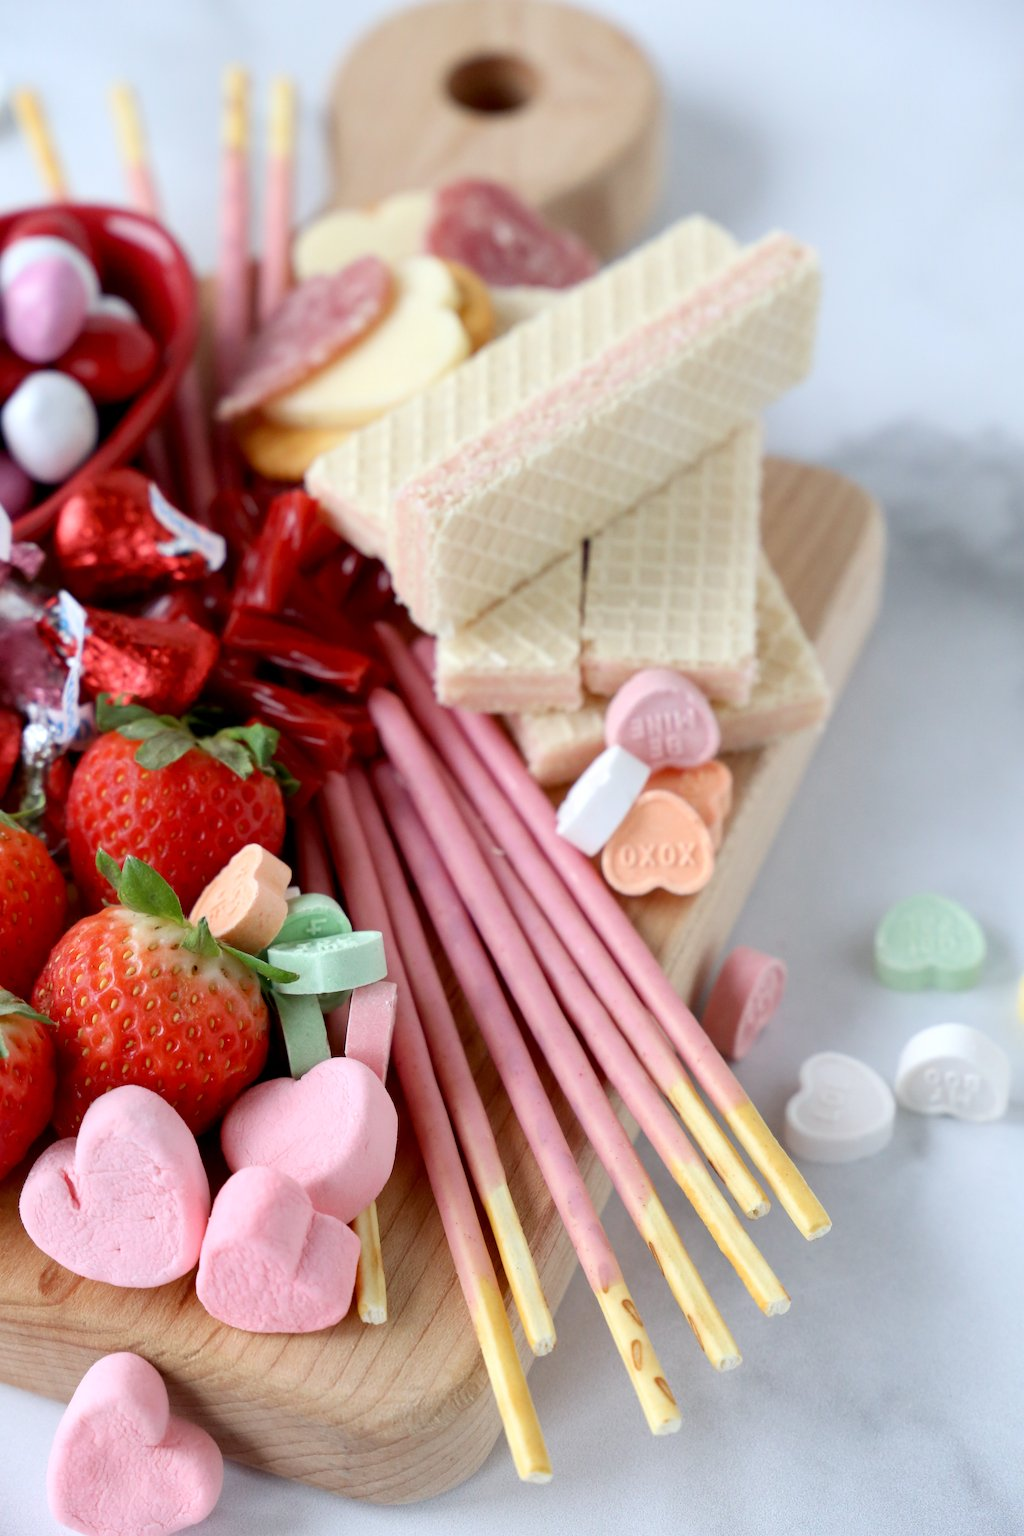 strawberry pokey sticks, strawberry wafer cookies, conversation hearts, chocolate and strawberries stacked on a wood board